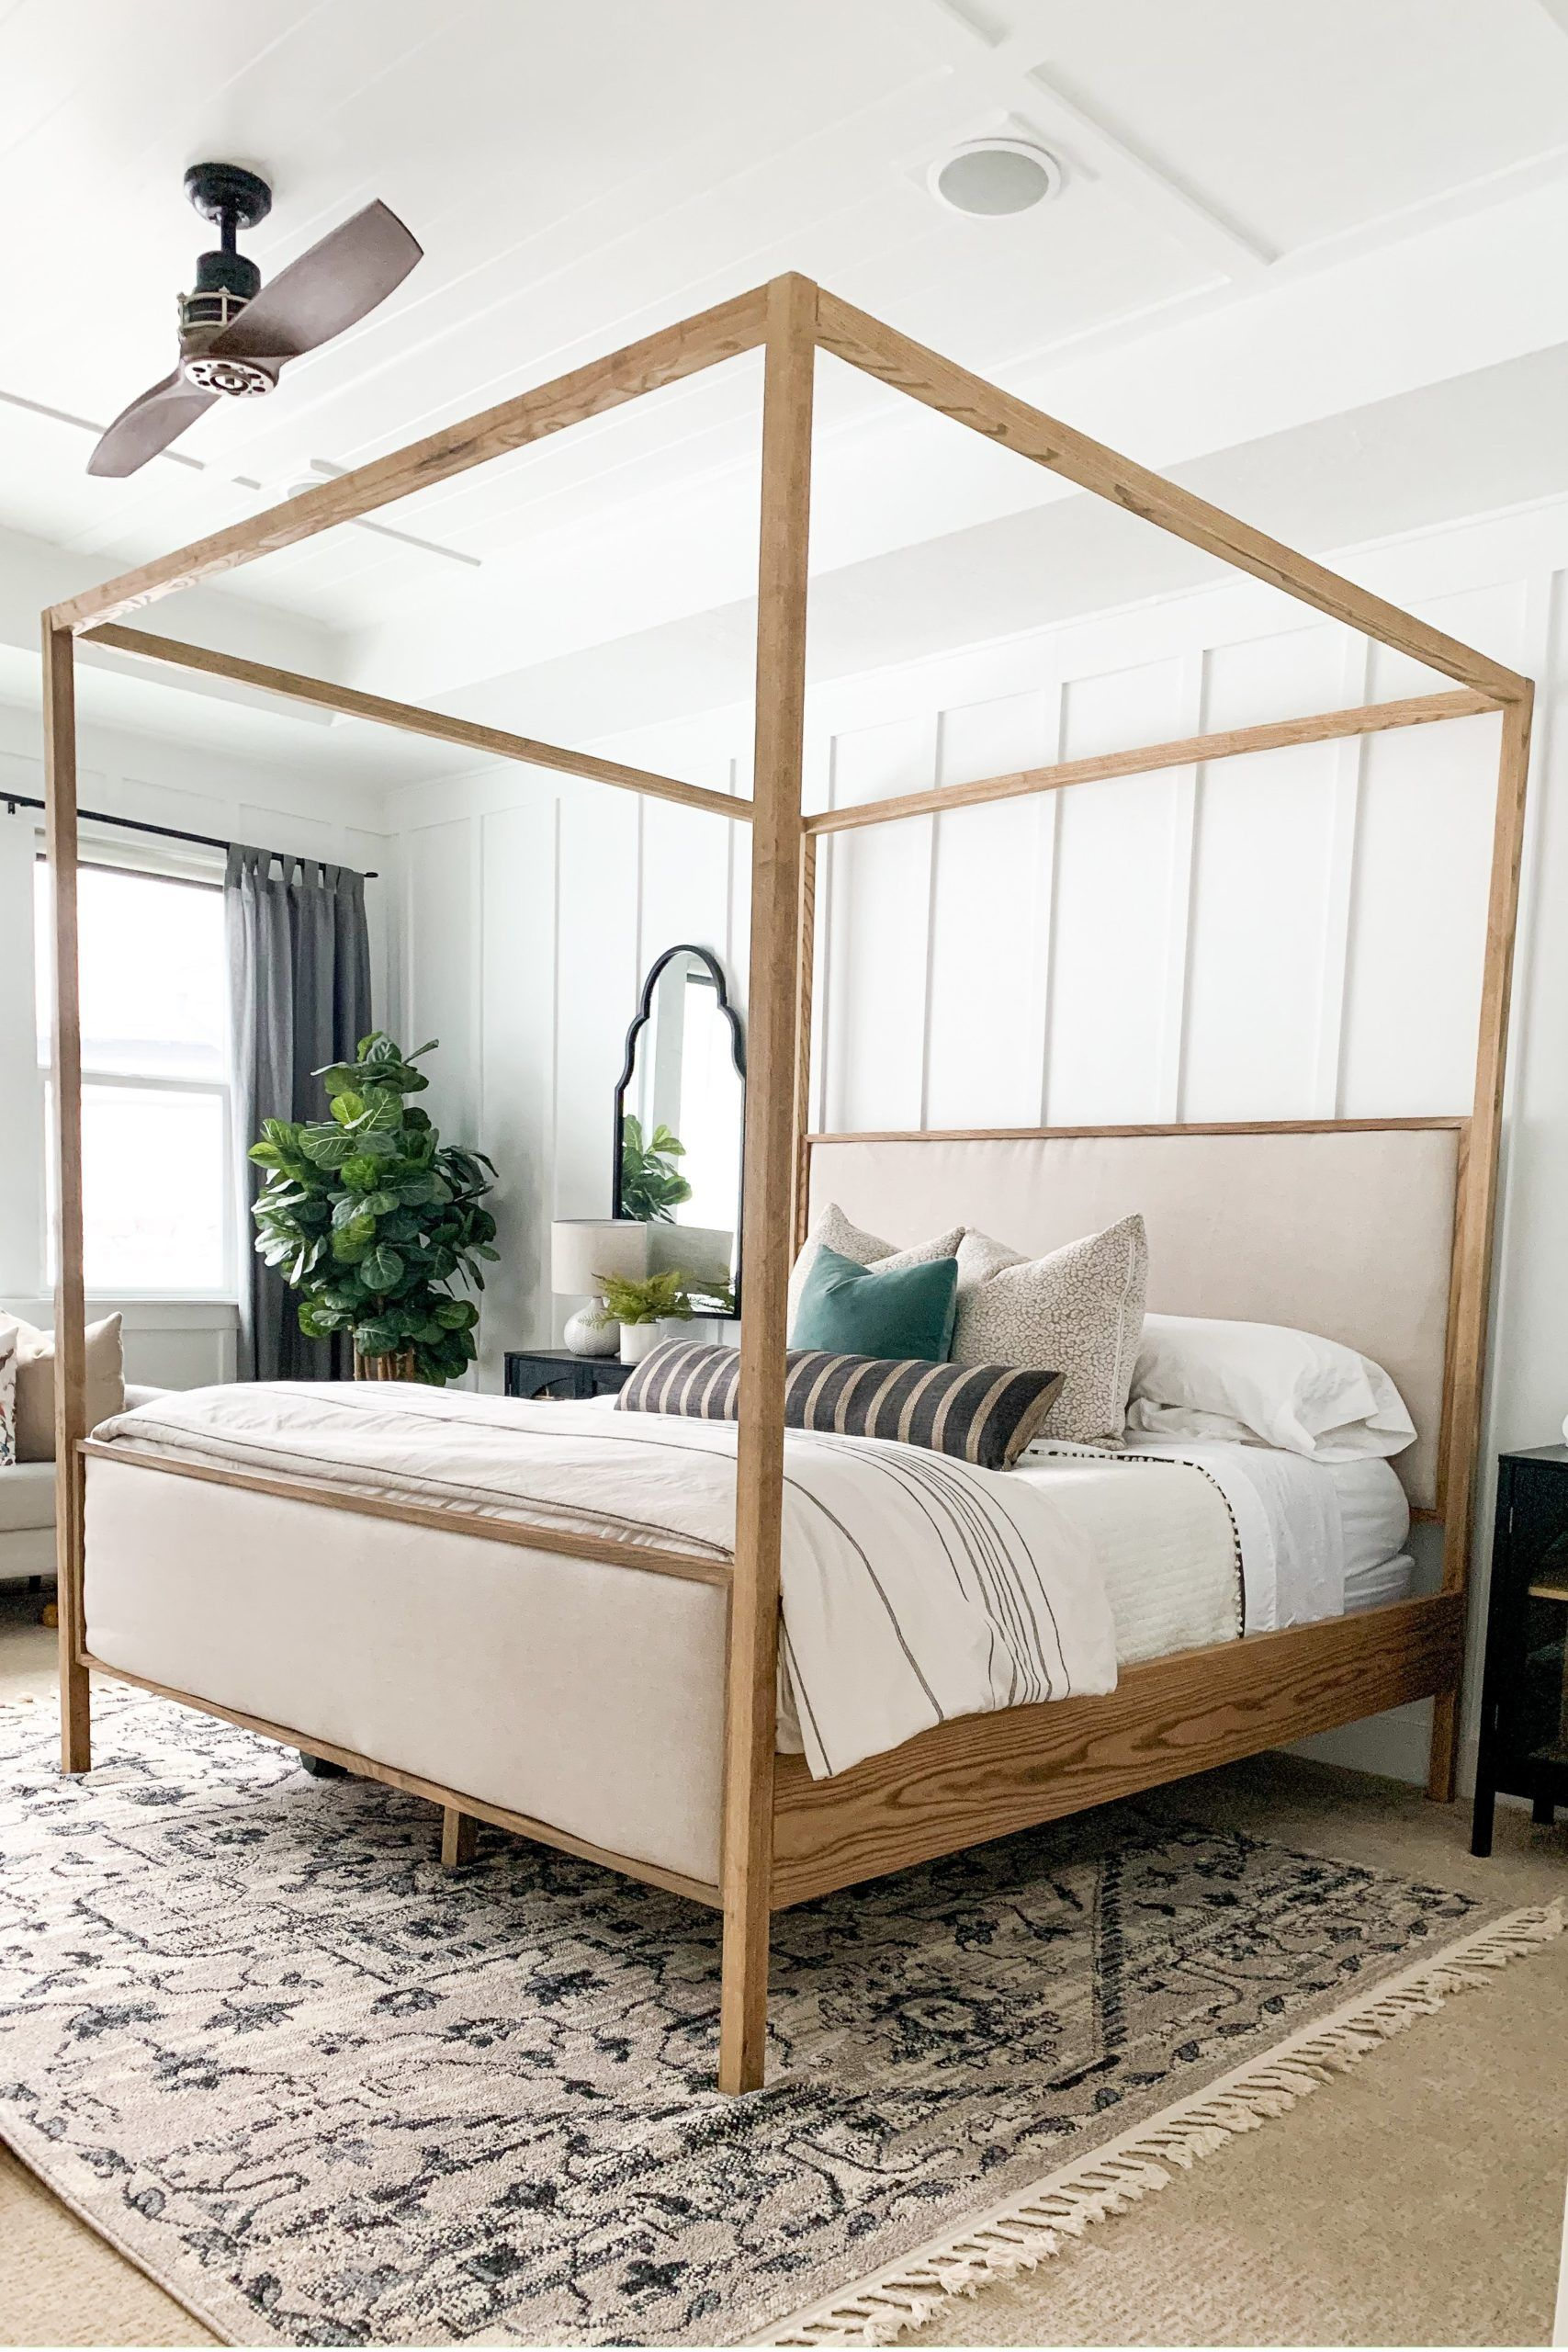 Diy upholstered canopy king bed pb dupe in 2020 farm